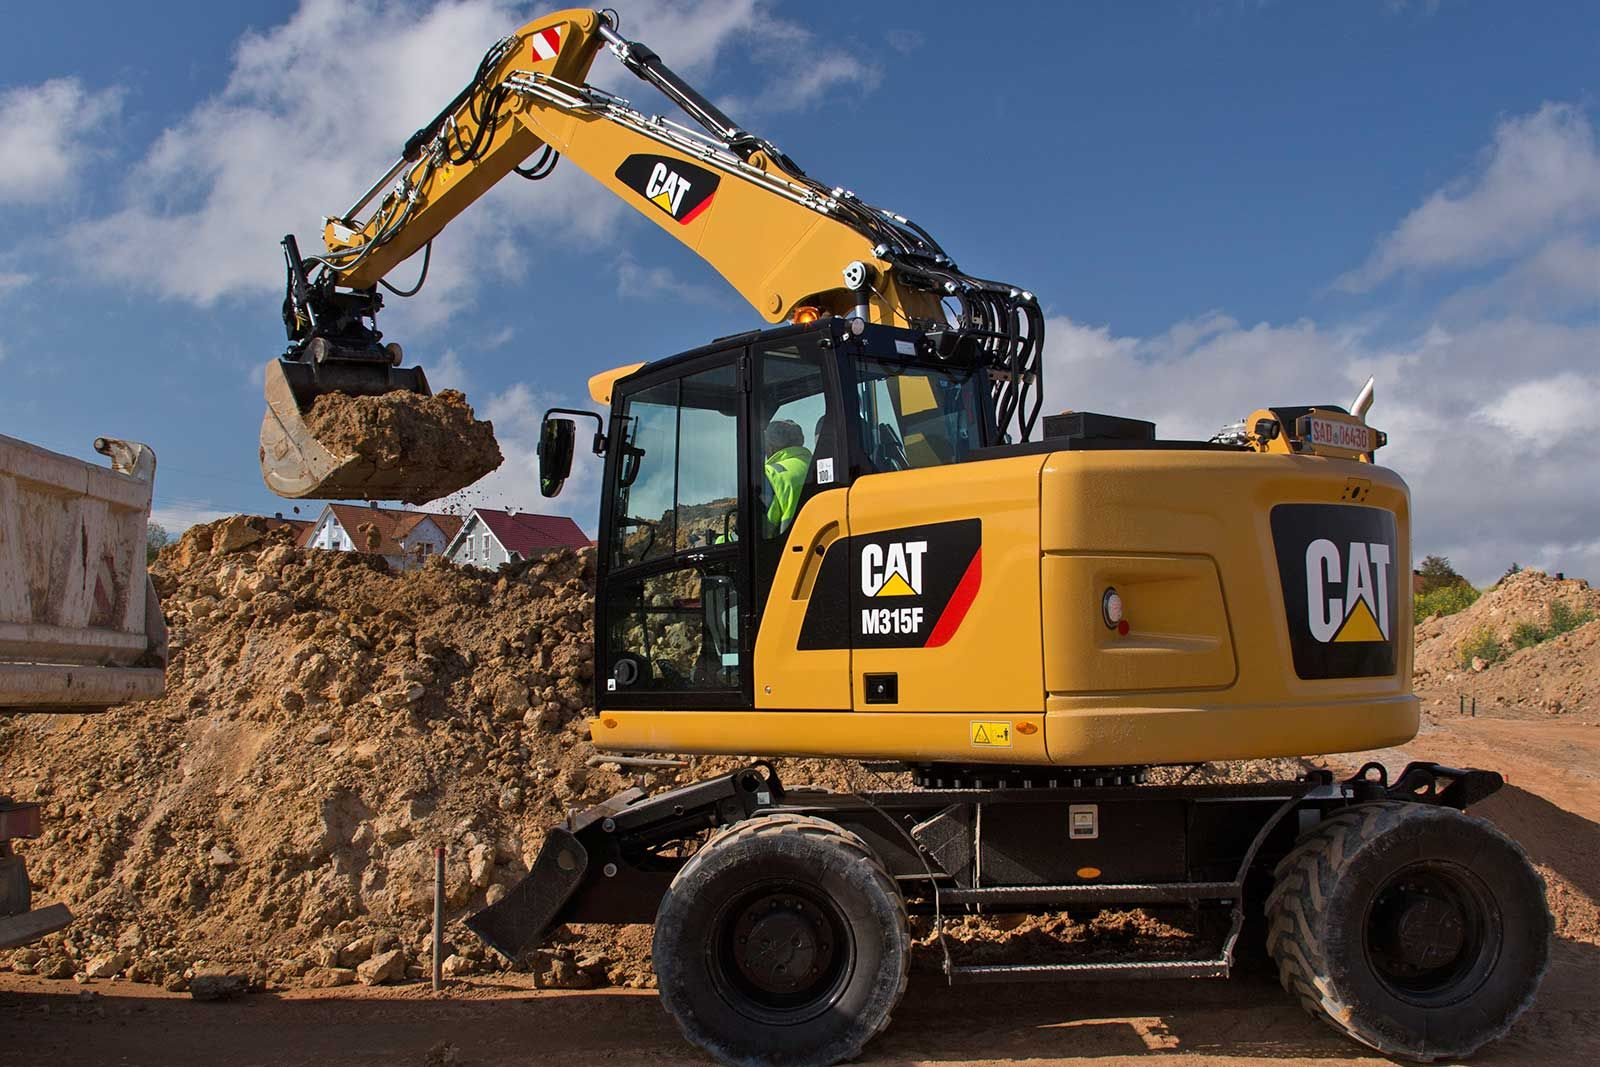 There are two new Caterpillar digger models M315F (service